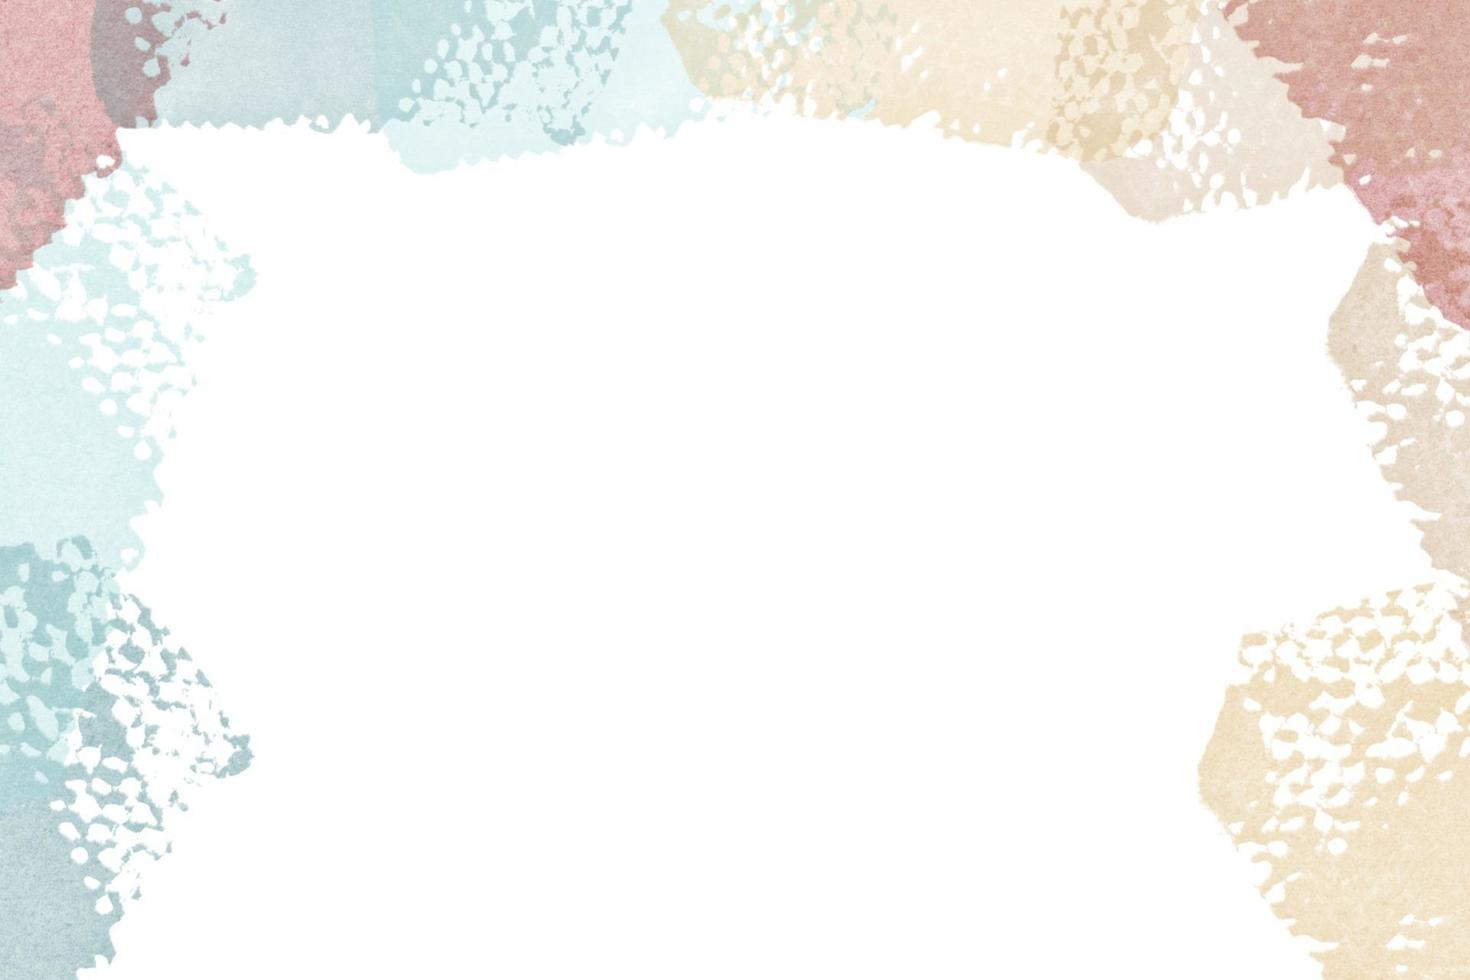 Hand painted watercolor background and shape vector